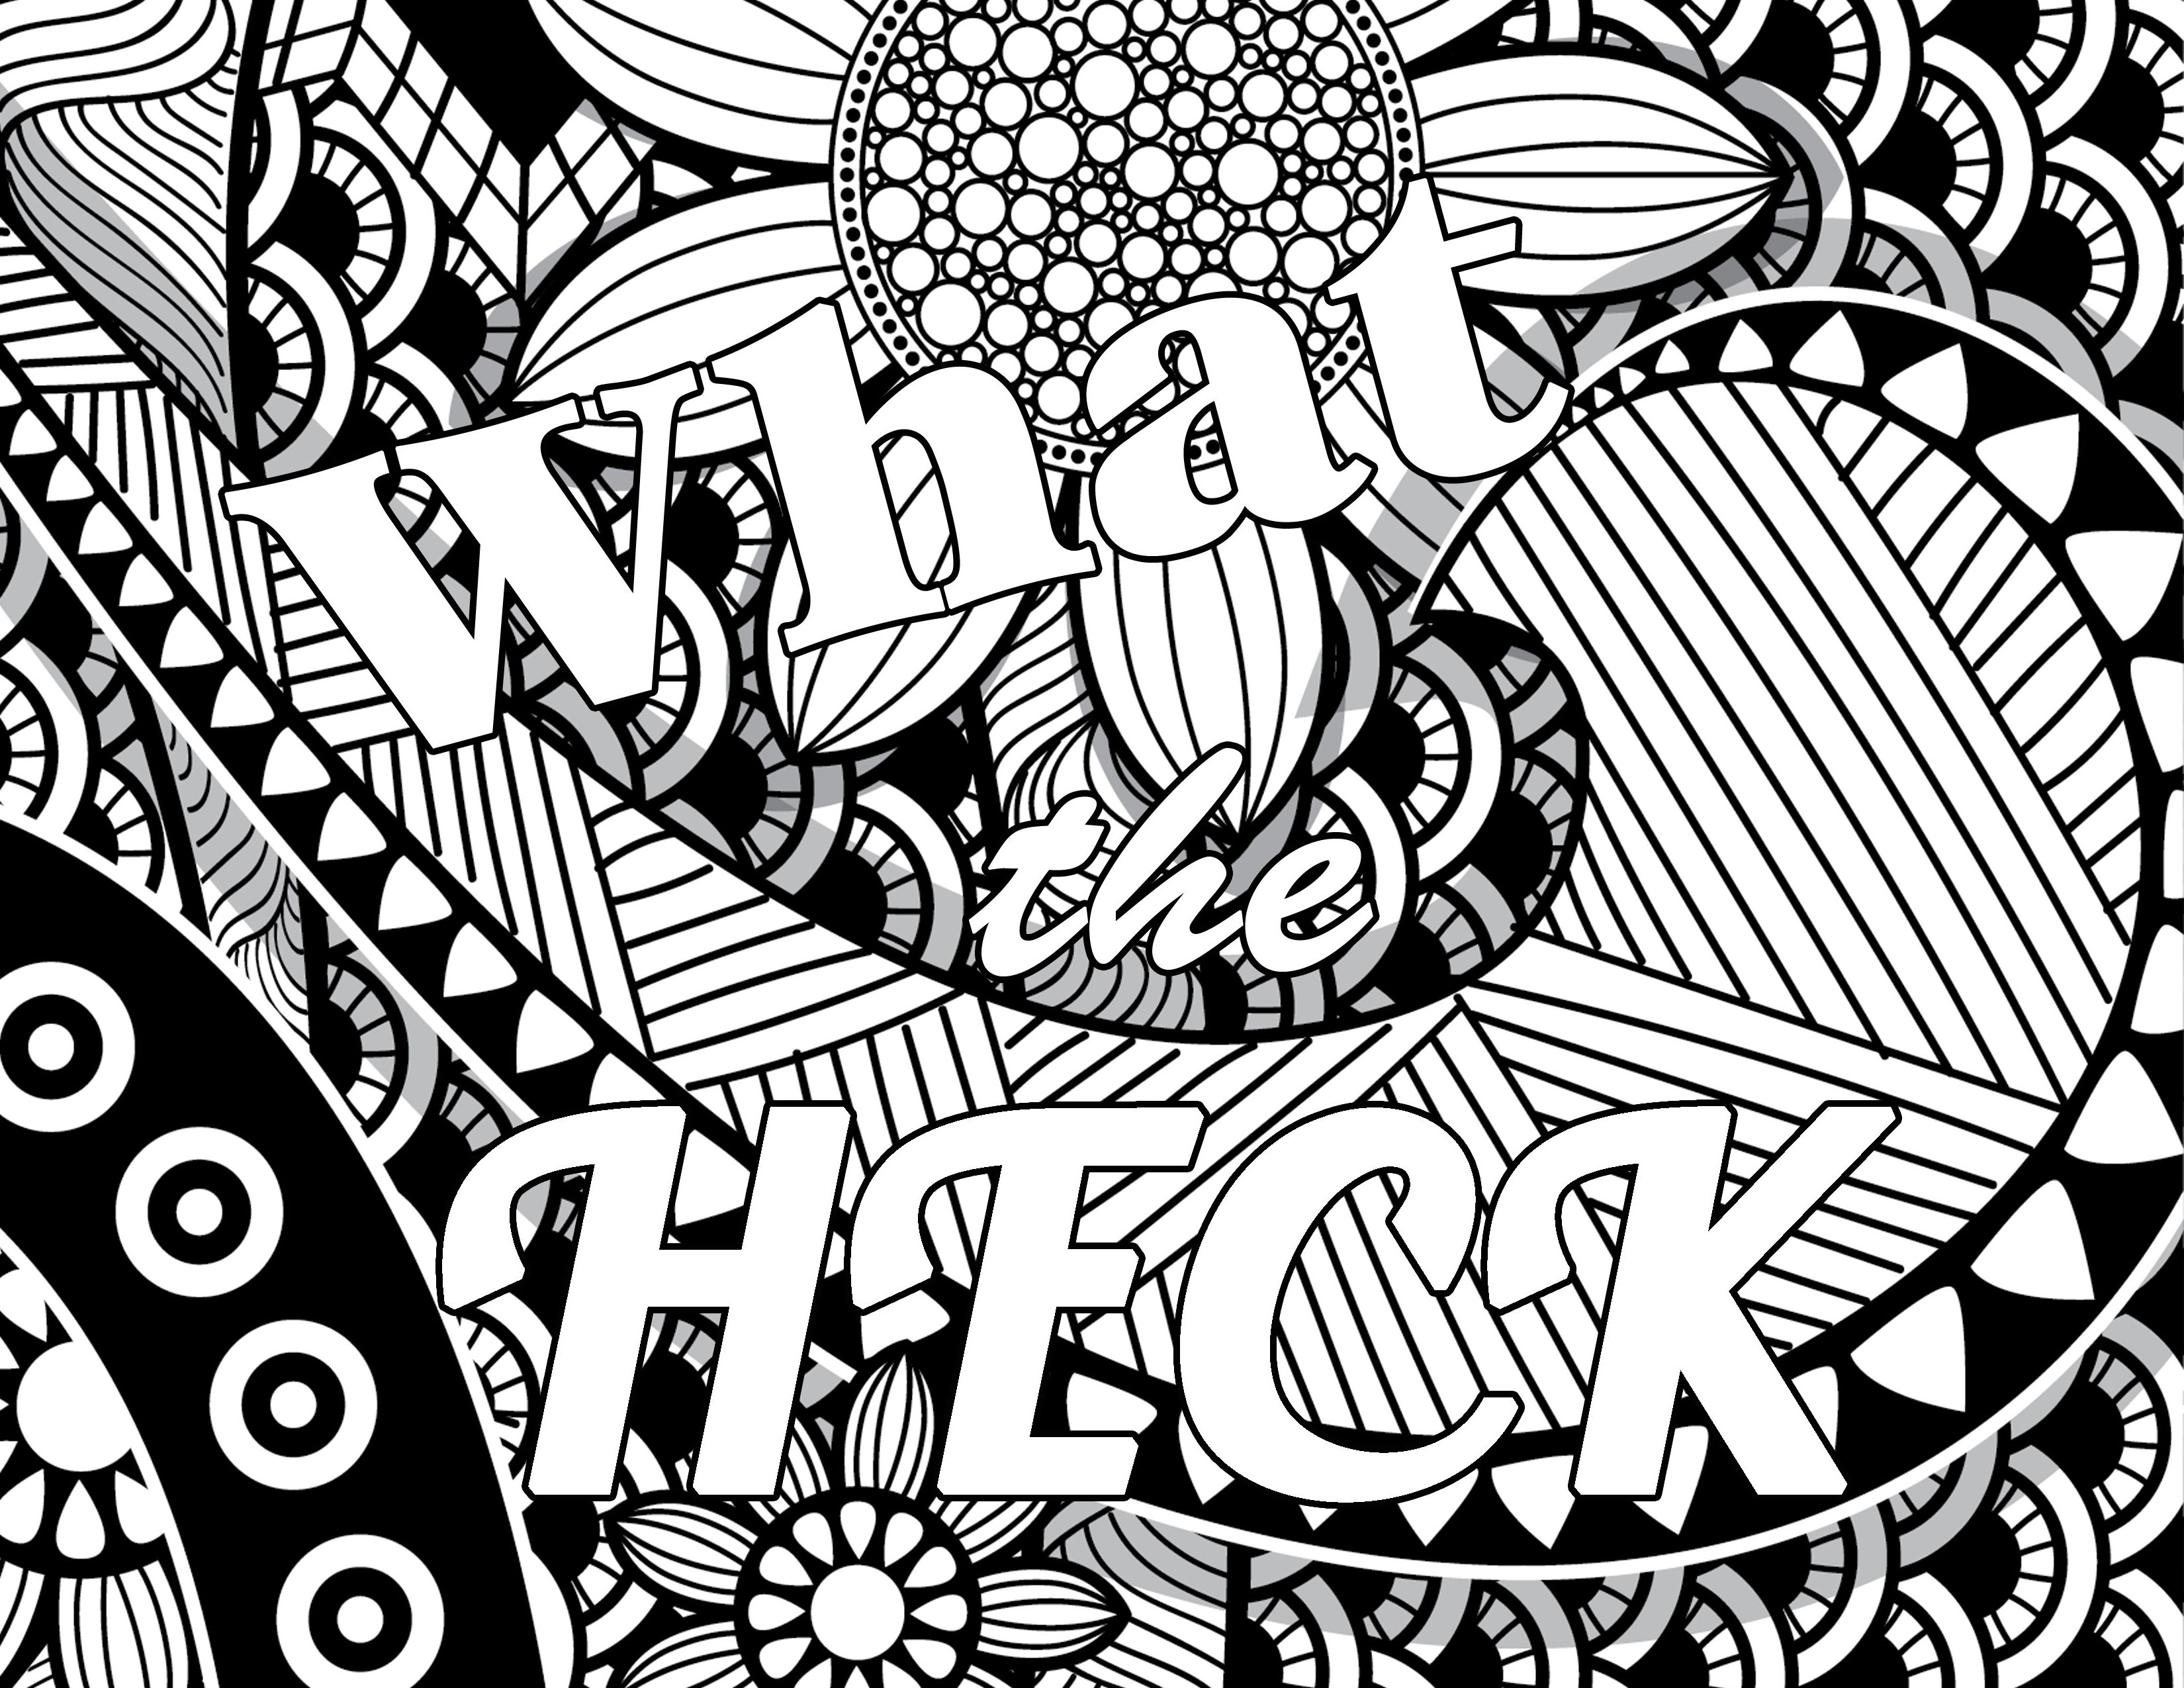 Bad word coloring pages - What The Heck Pg Swear Word Coloring Book 1